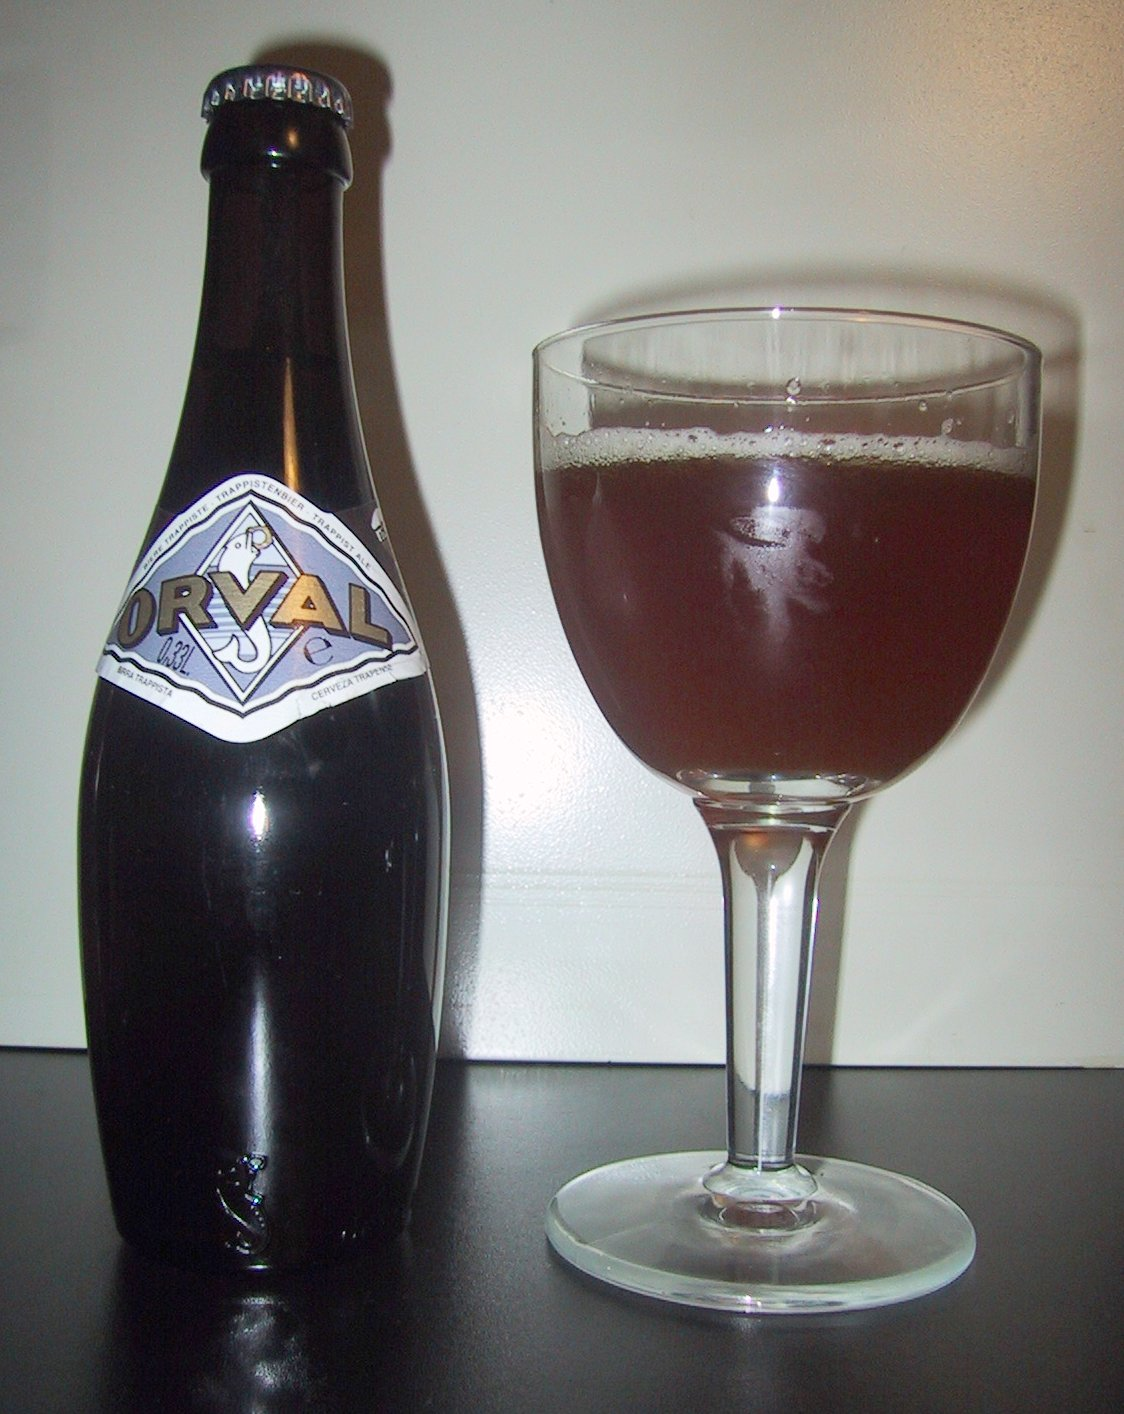 Orval Wikipedia